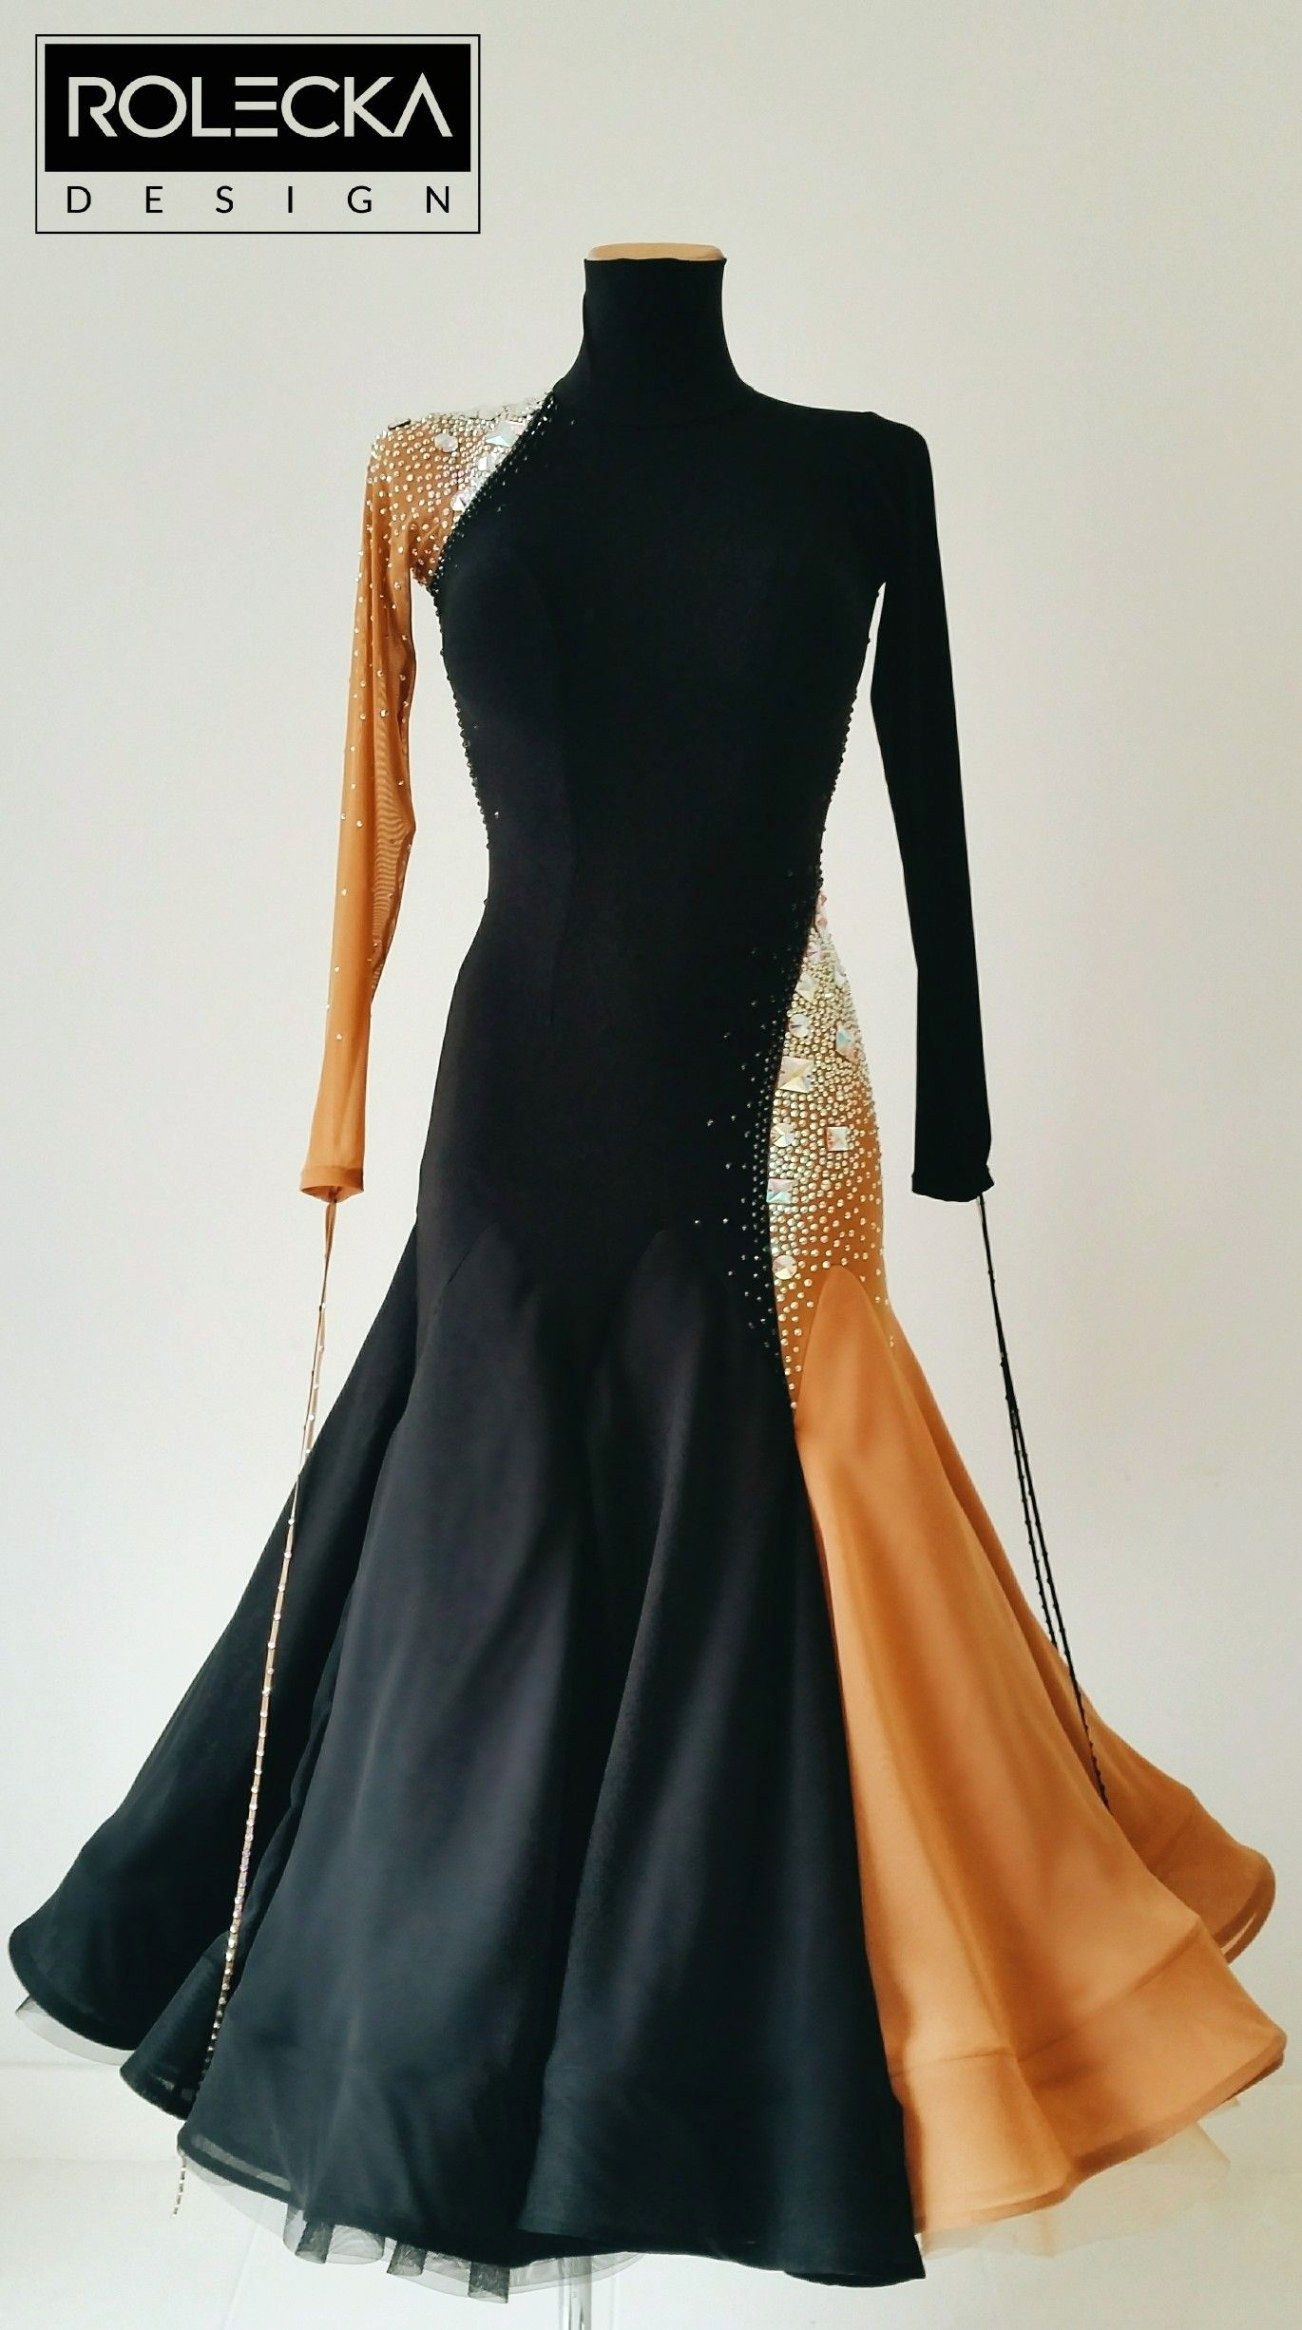 93a0531e3f24 Ballroom dancing dresses. Ballroom dancing is just as popular as ever before,  one good reason could be the numerous videos and television shows which ...